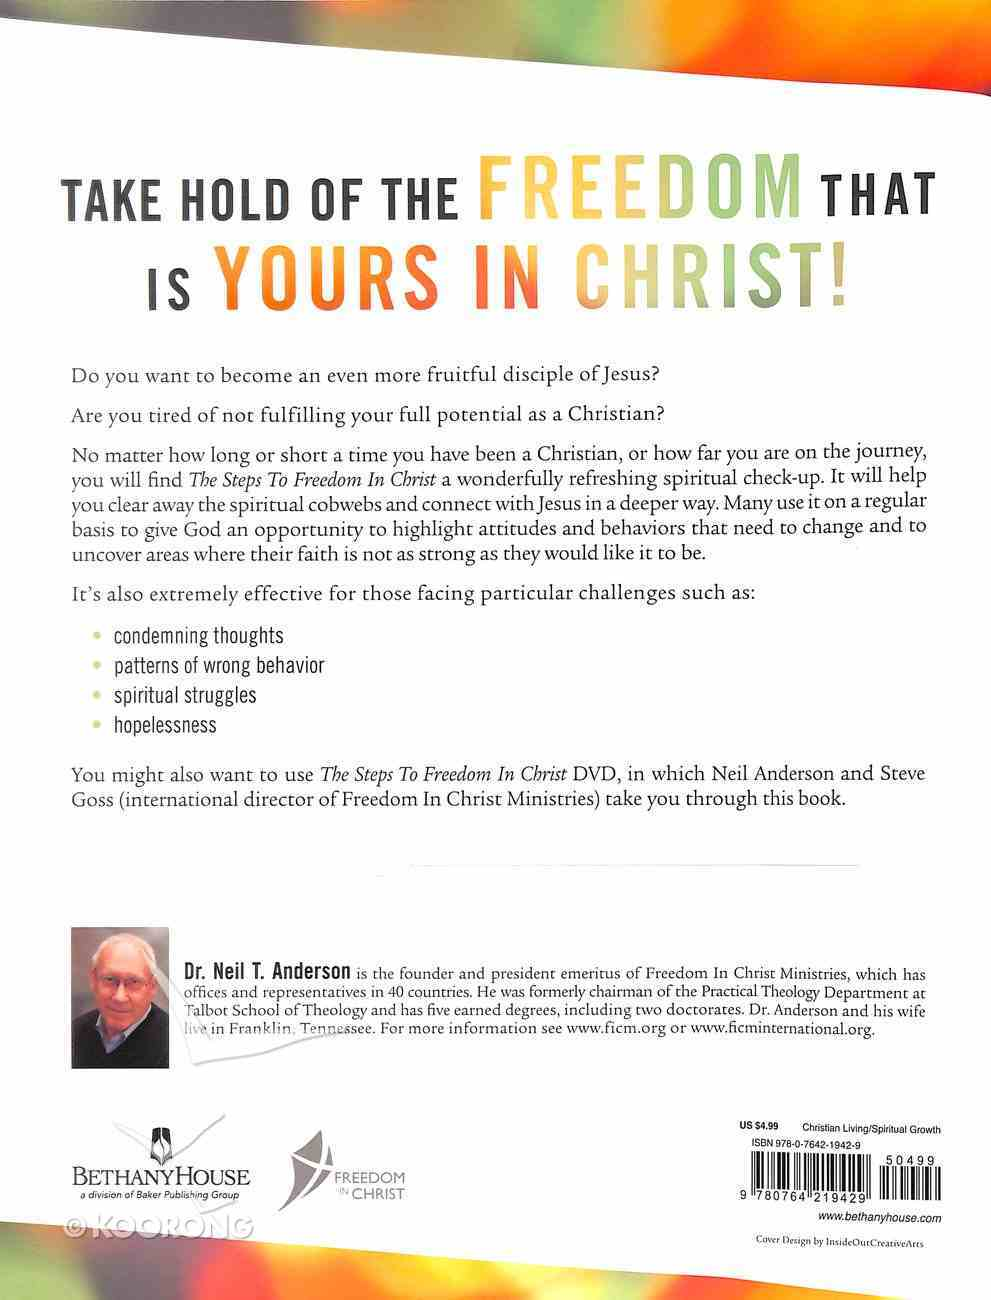 The Steps to Freedom in Christ: A Biblical Guide to Help You Resolve Personal and Spiritual Conflicts and Become a Fruitful Disciple of Jesus Paperback